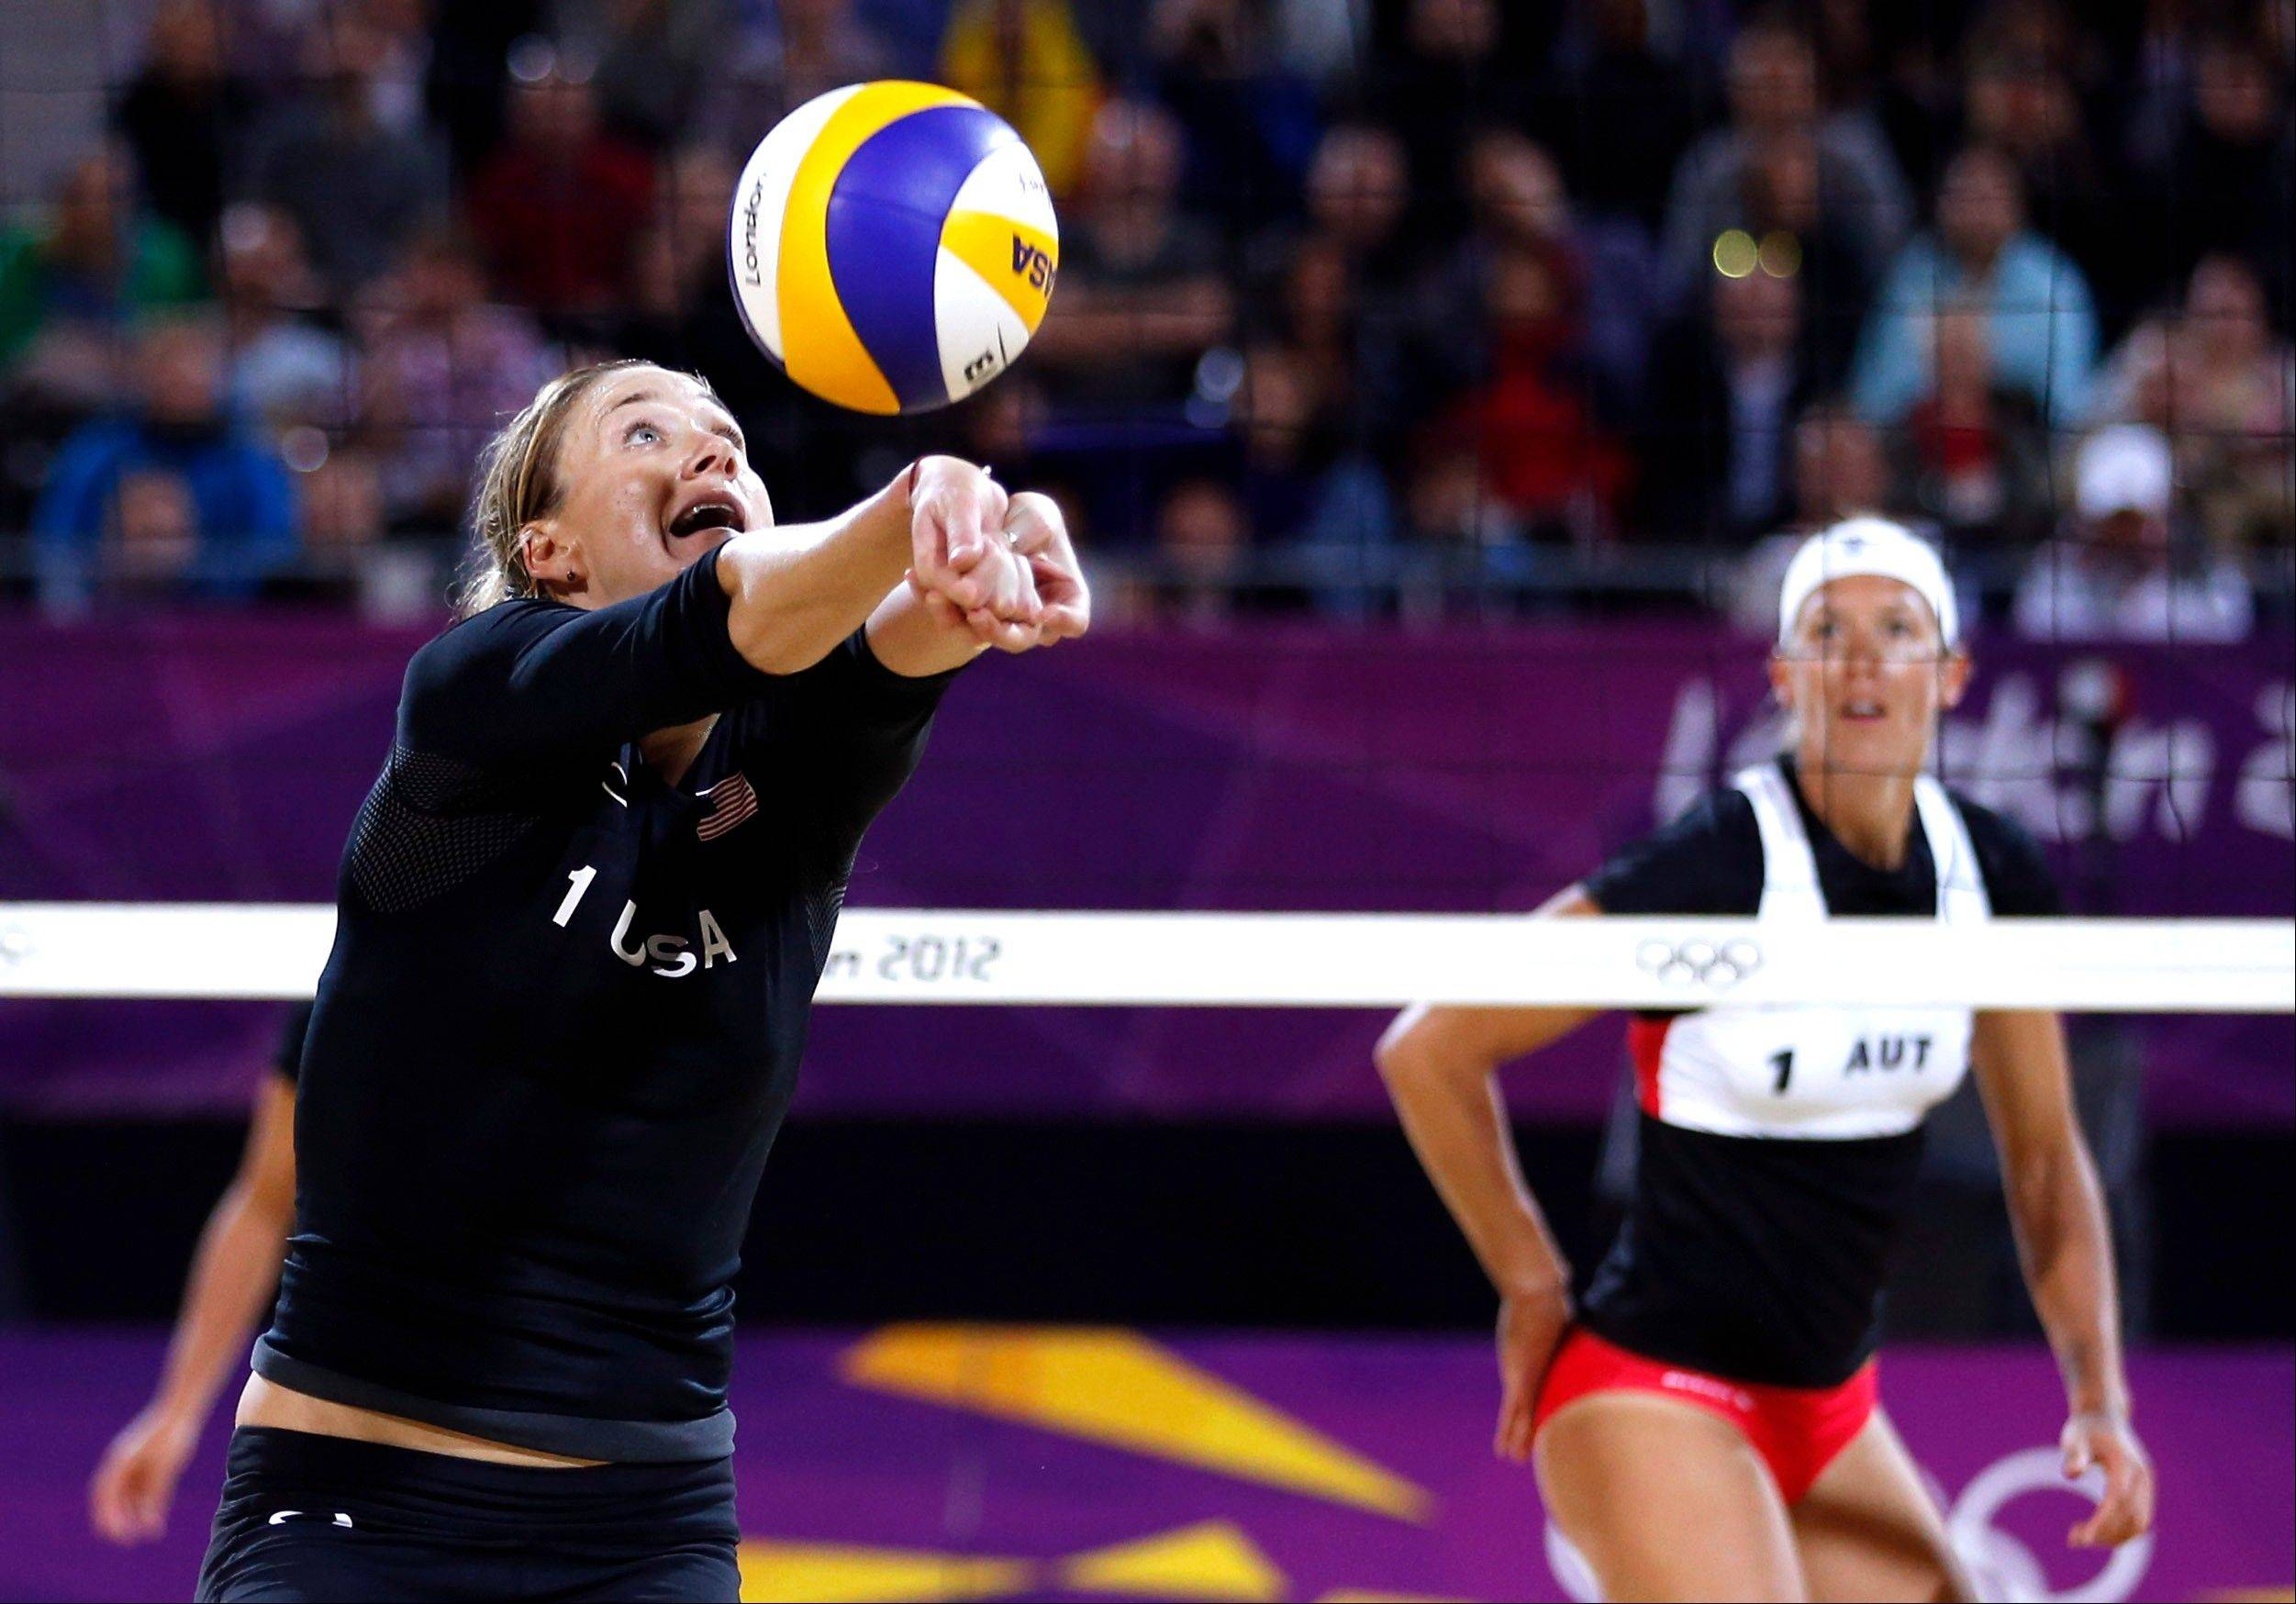 United States beach volleybal player Kerri Walsh, left, returns the ball as Austria's Stefanie Schwaiger looks on Wednesday during match at the 2012 Summer Olympics.